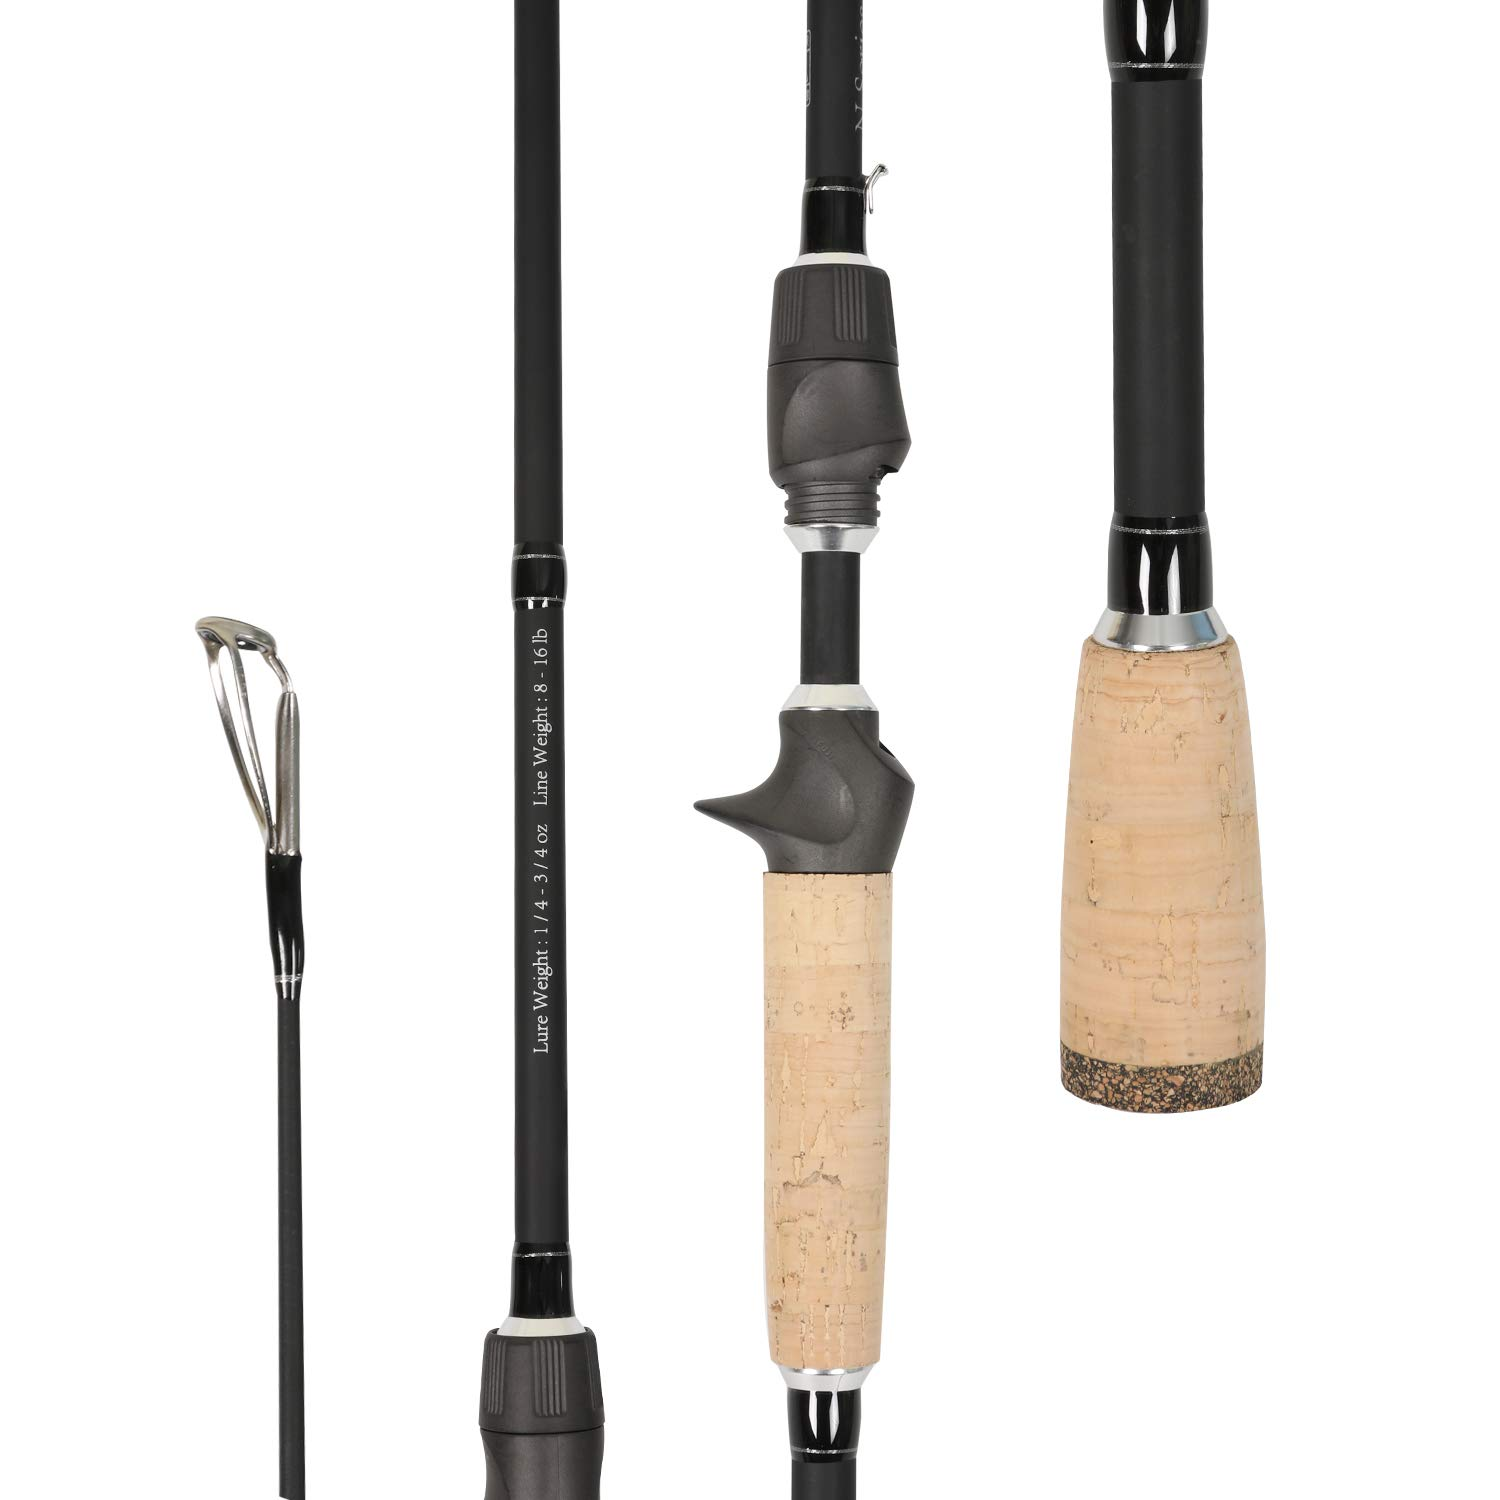 Entsport N Series – Aries 2 Pieces 7 Bait Casting Spinning Rod with Fuji Guide and Reel Seat